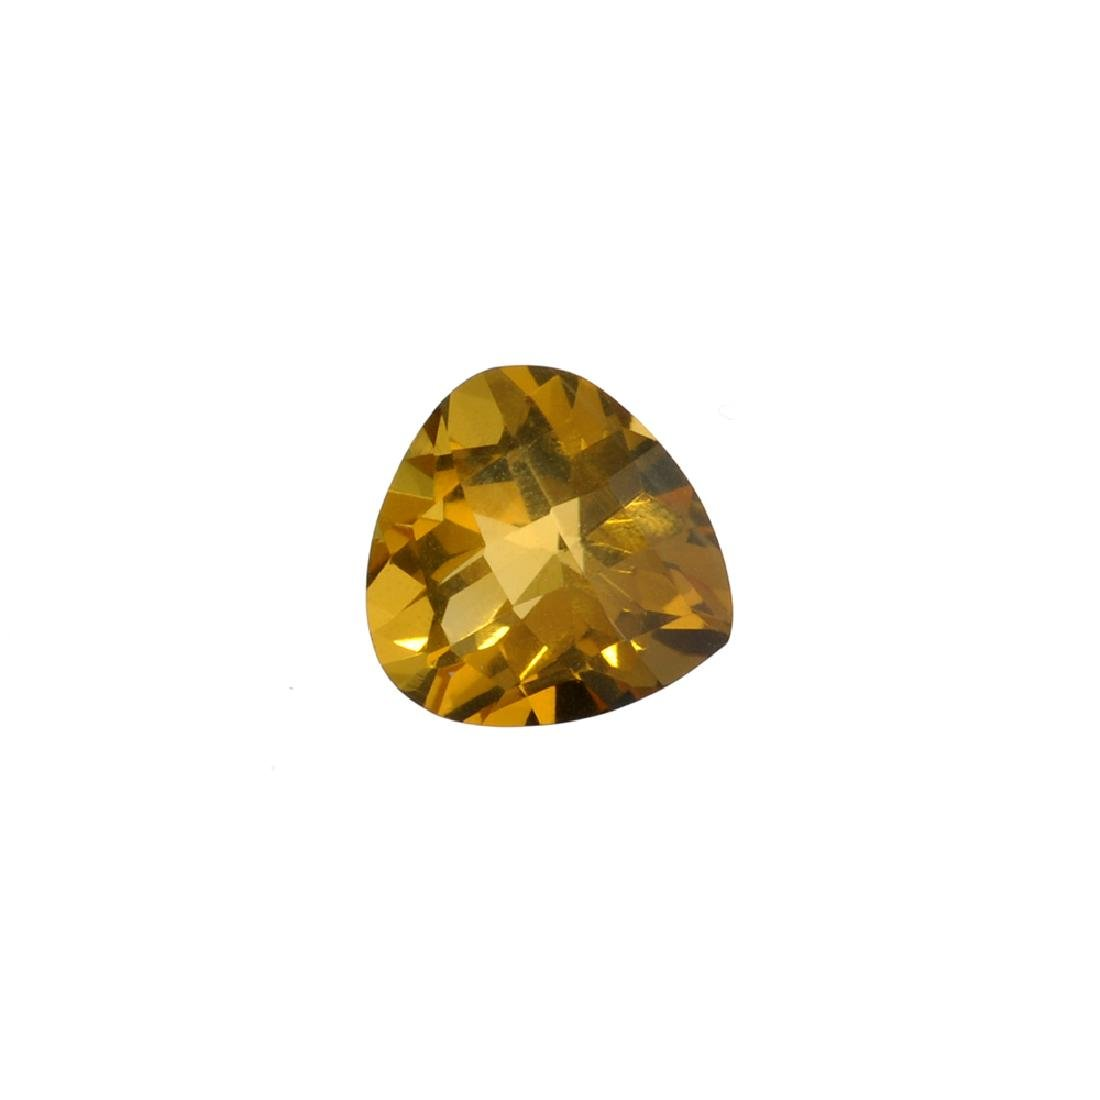 APP: 0.4k 7.33CT Pear Cut Citrine Gemstone